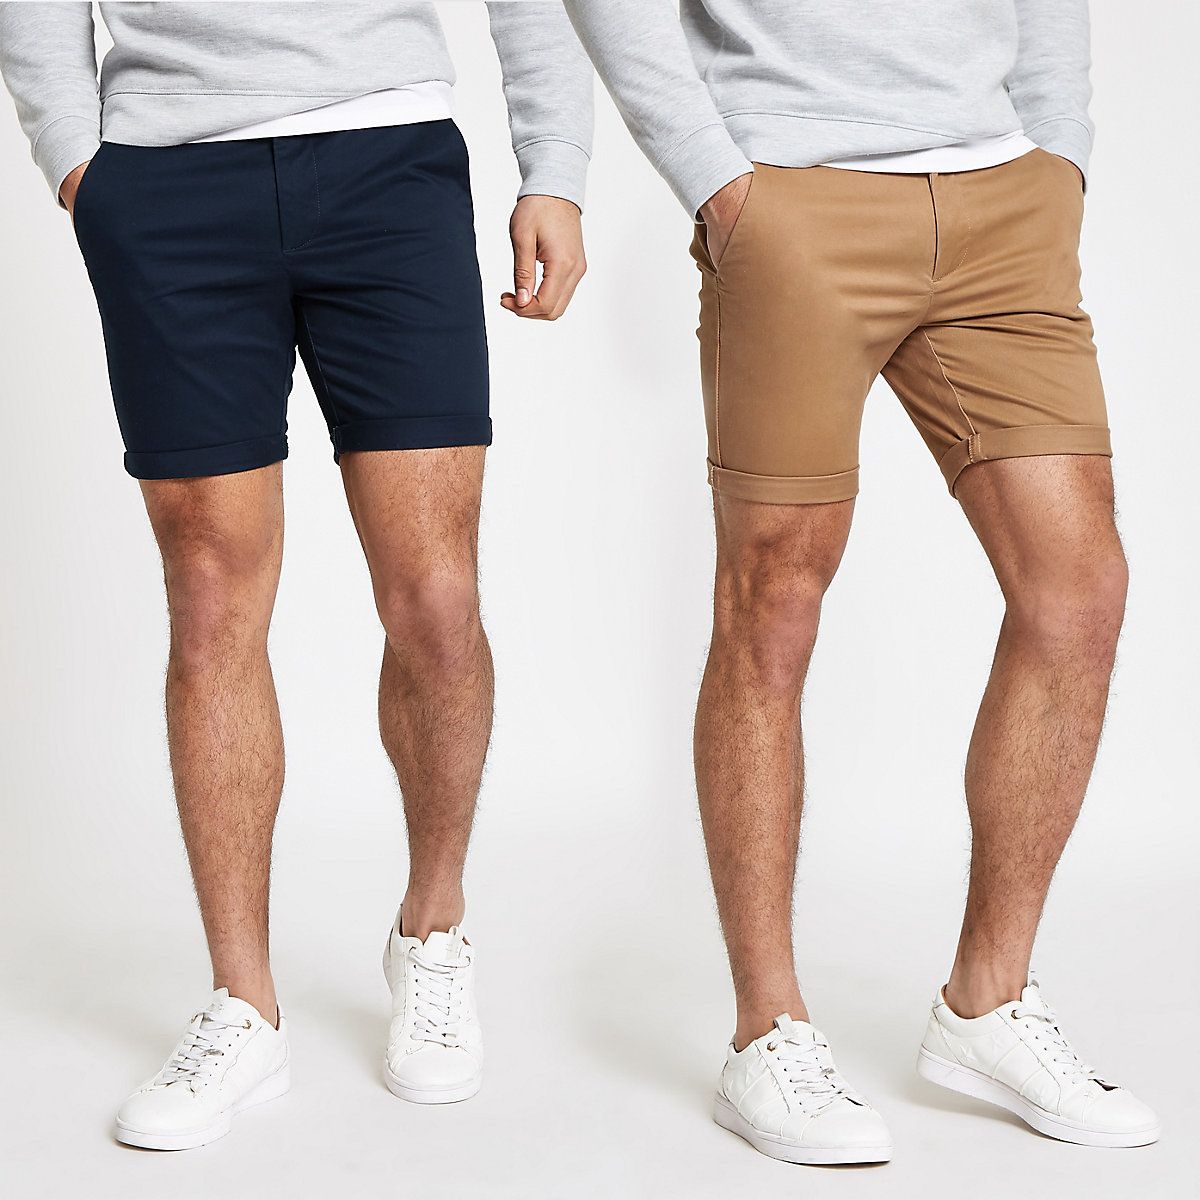 Brown and navy skinny chino shorts 2 pack